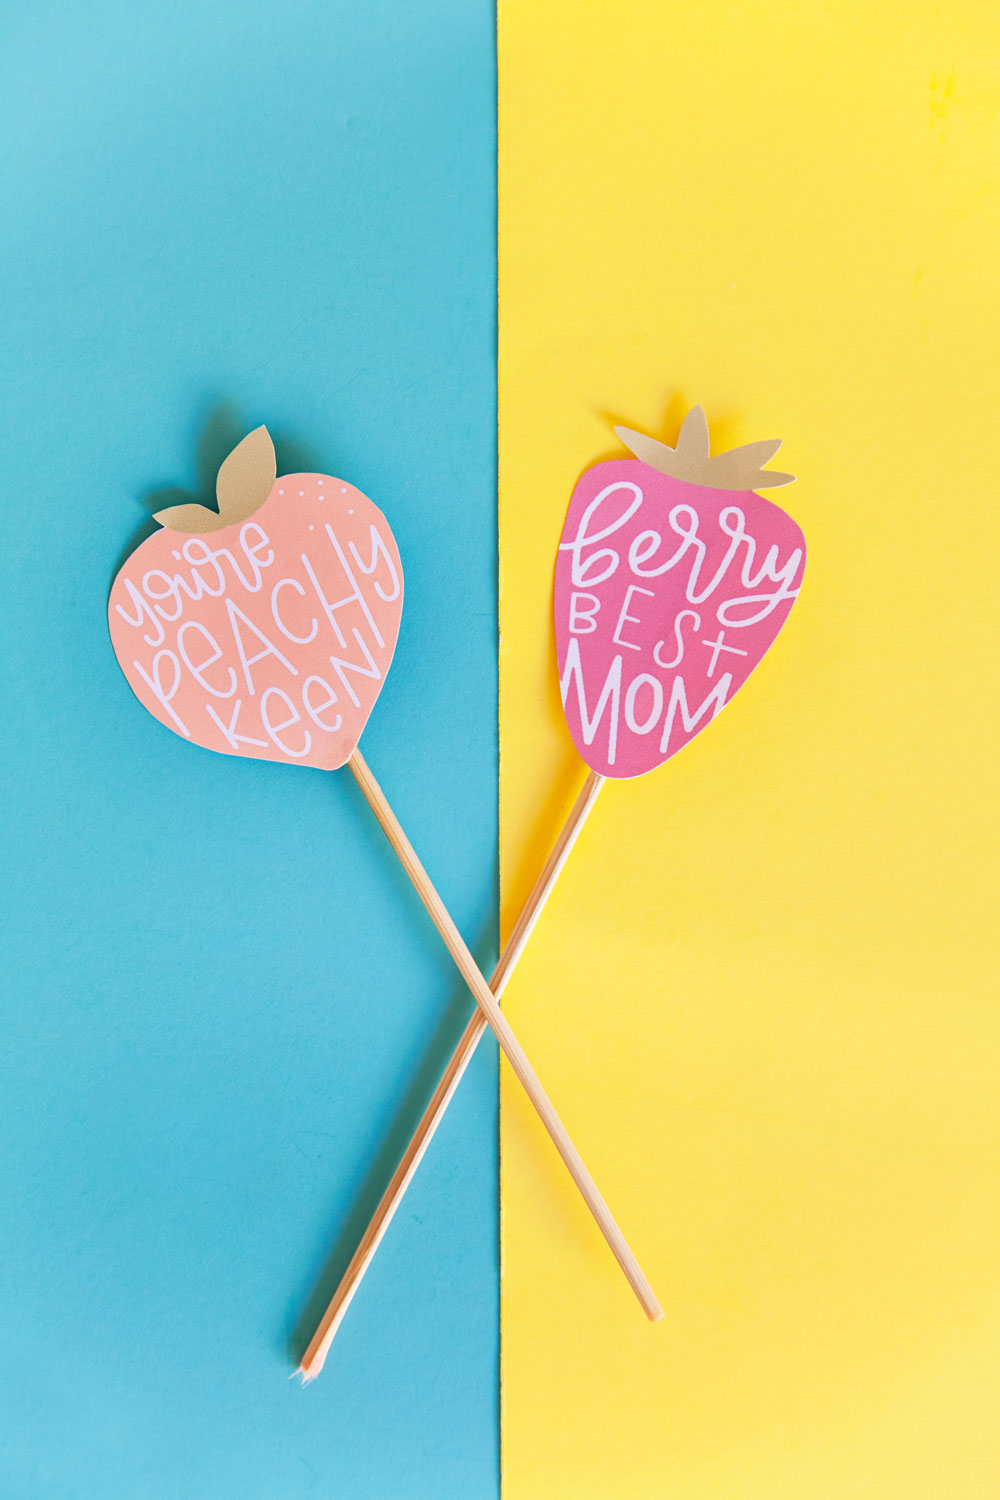 Cute-printable-drink-stirrers-to-tell-your-mom-this-Mother's-Day-just-how-great-she-is